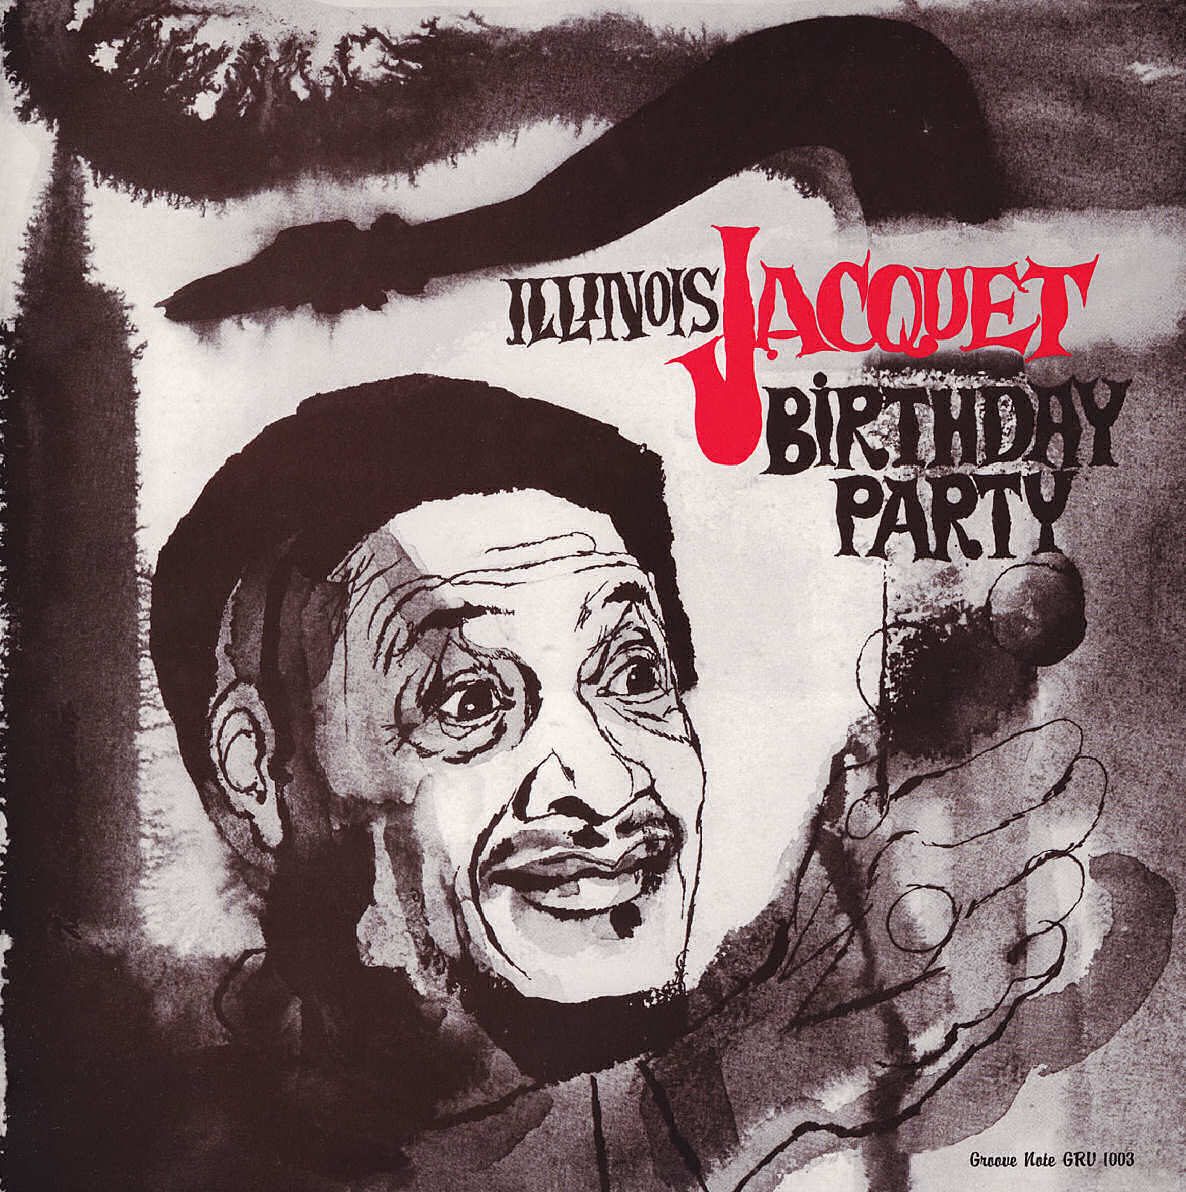 Illinois Jacquet - Birthday Party CD cover